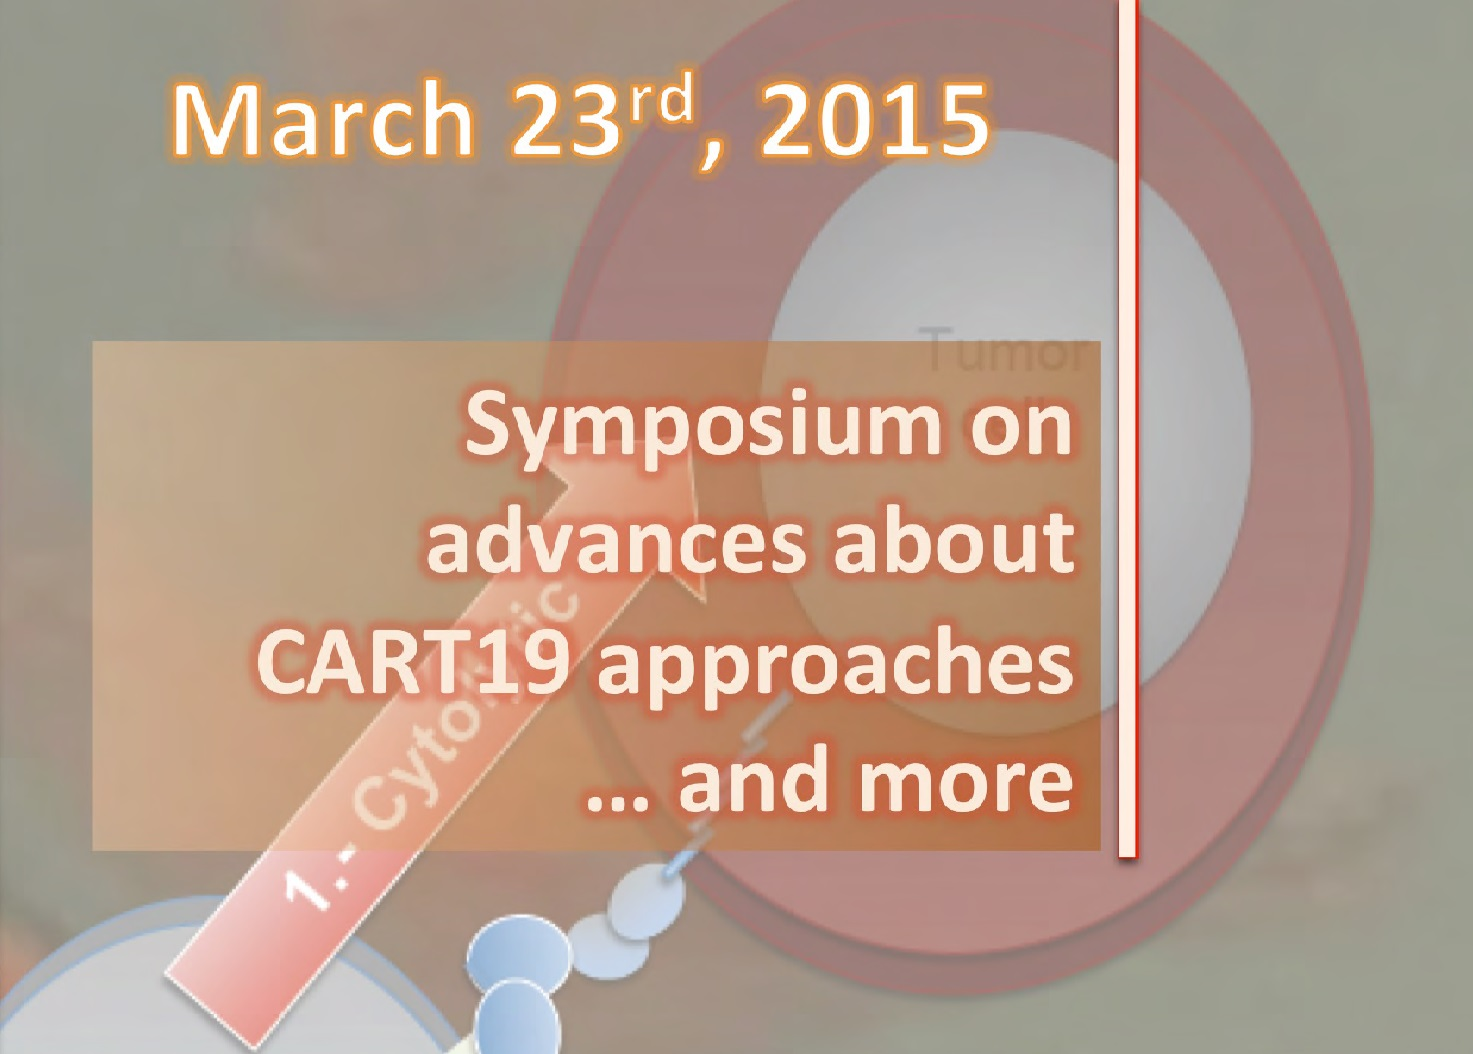 Symposium on advances about CART19 approaches